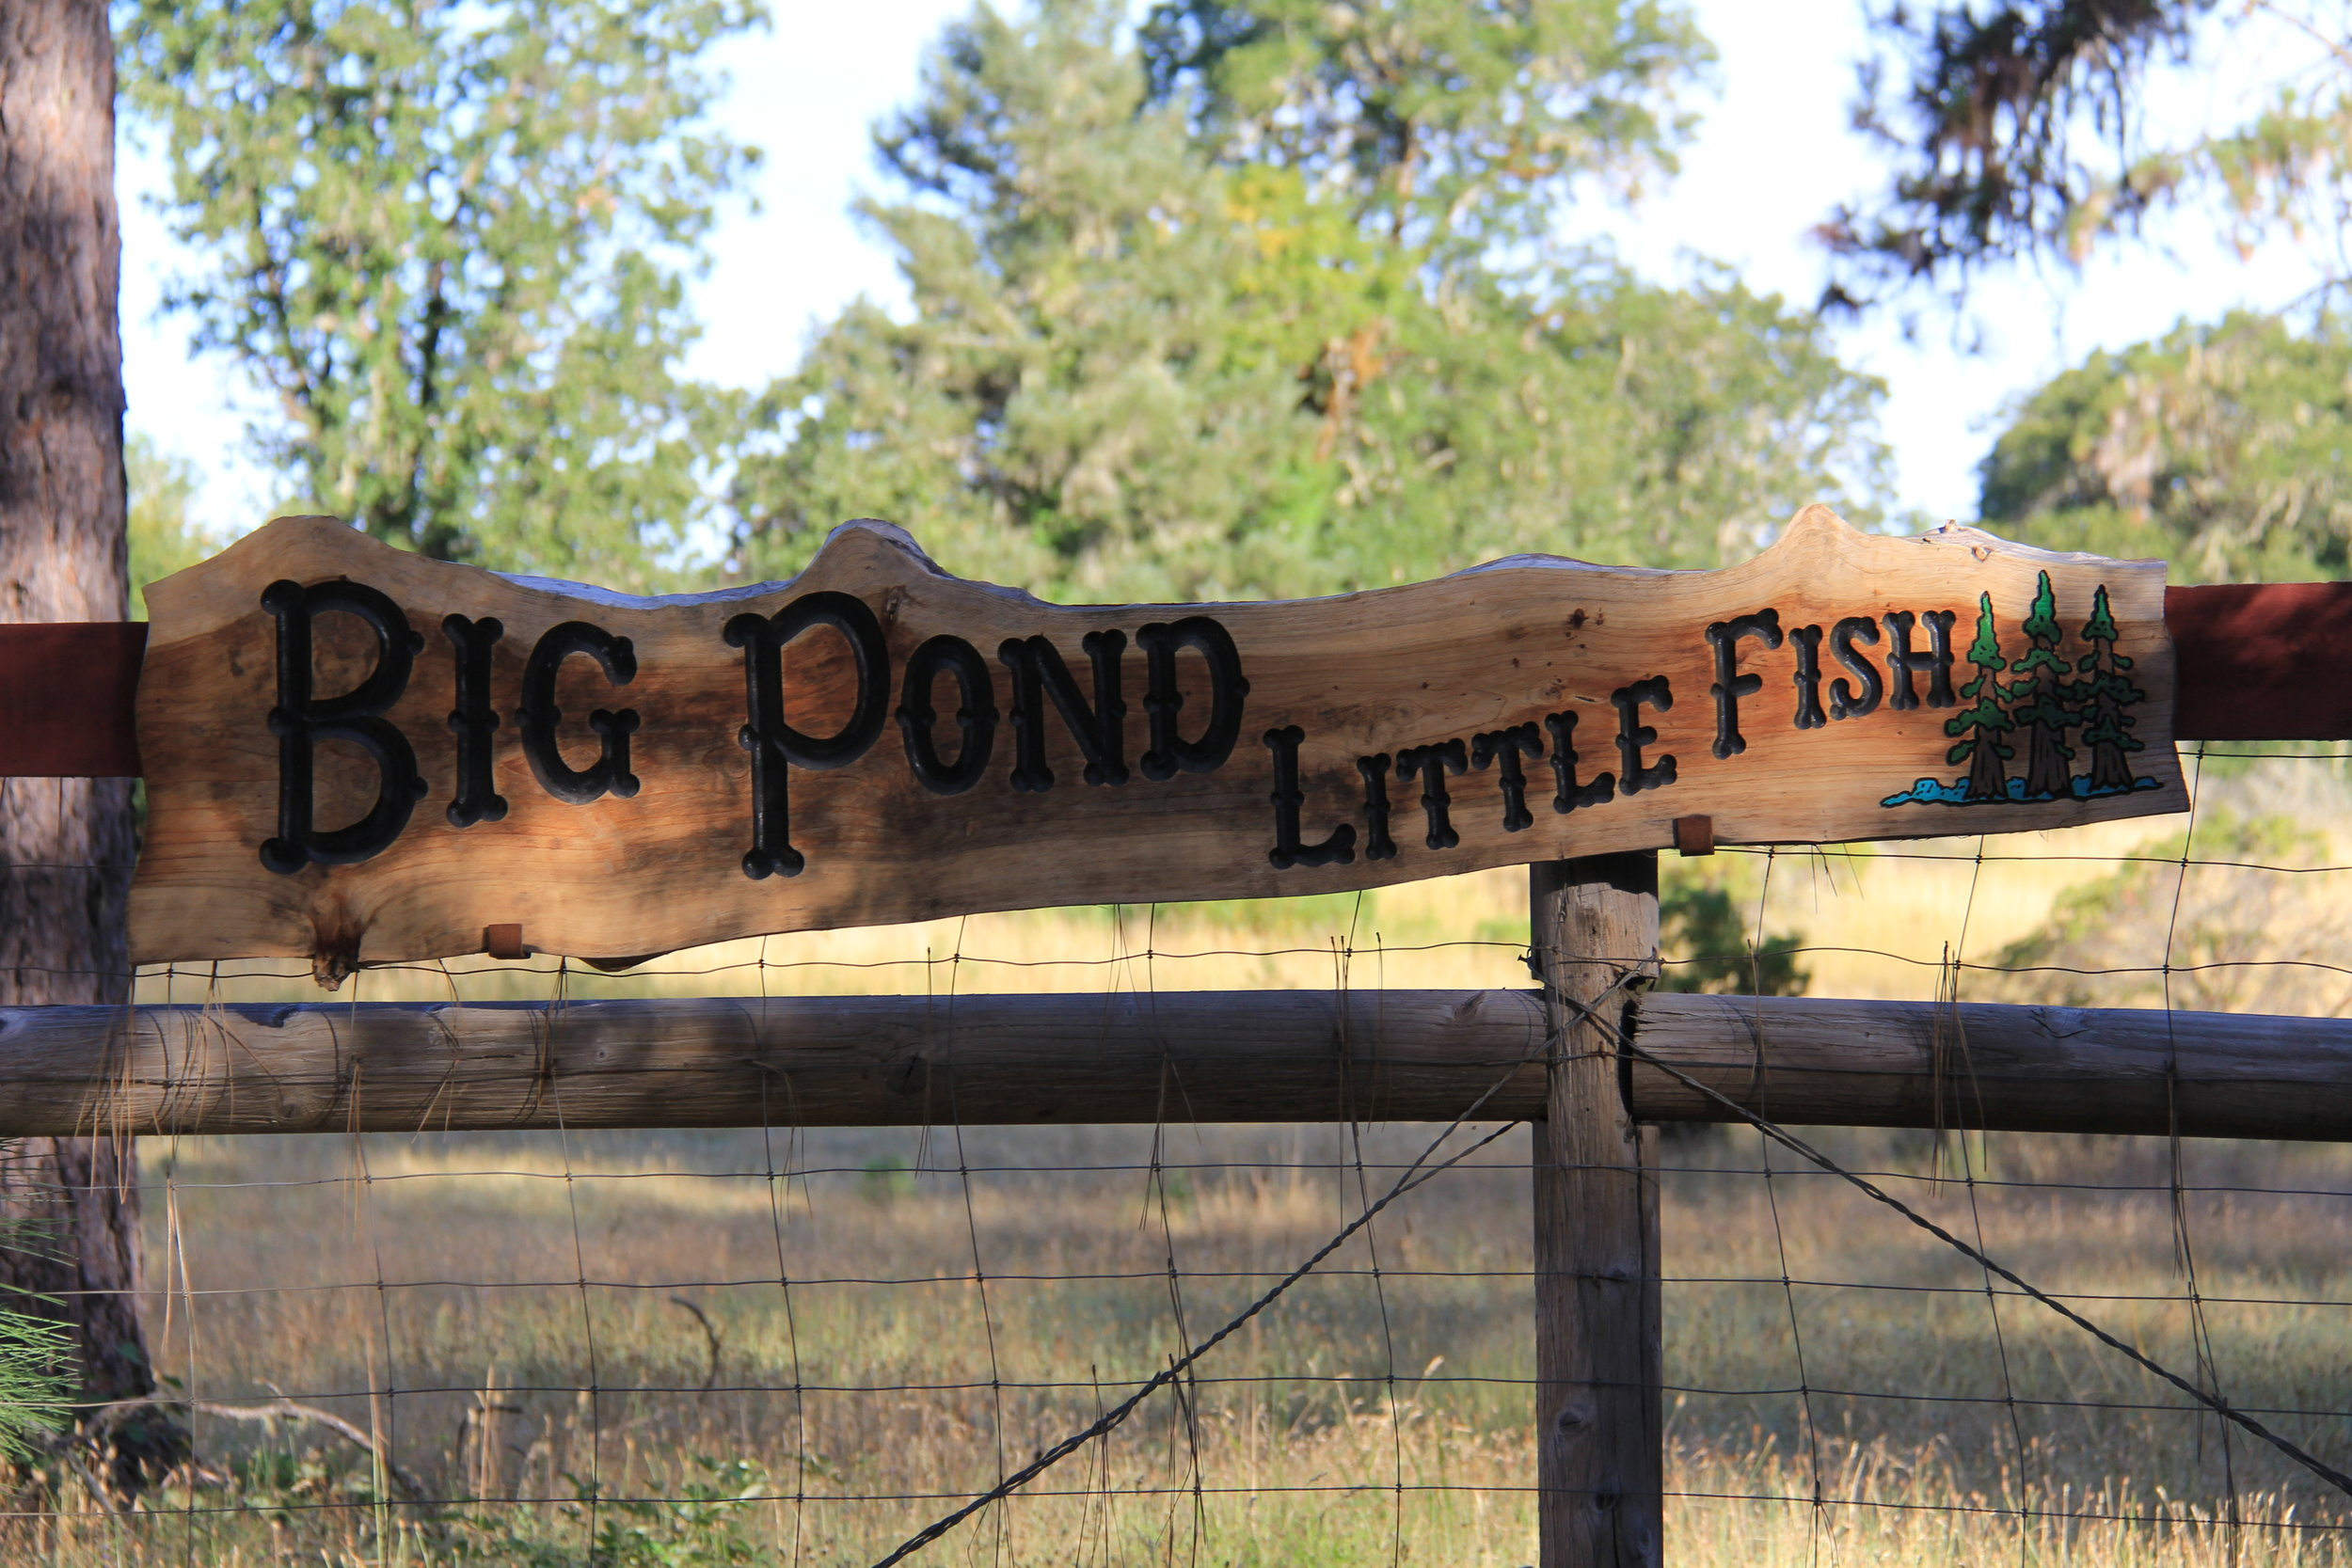 Welcome to Big Pond Little Fish!